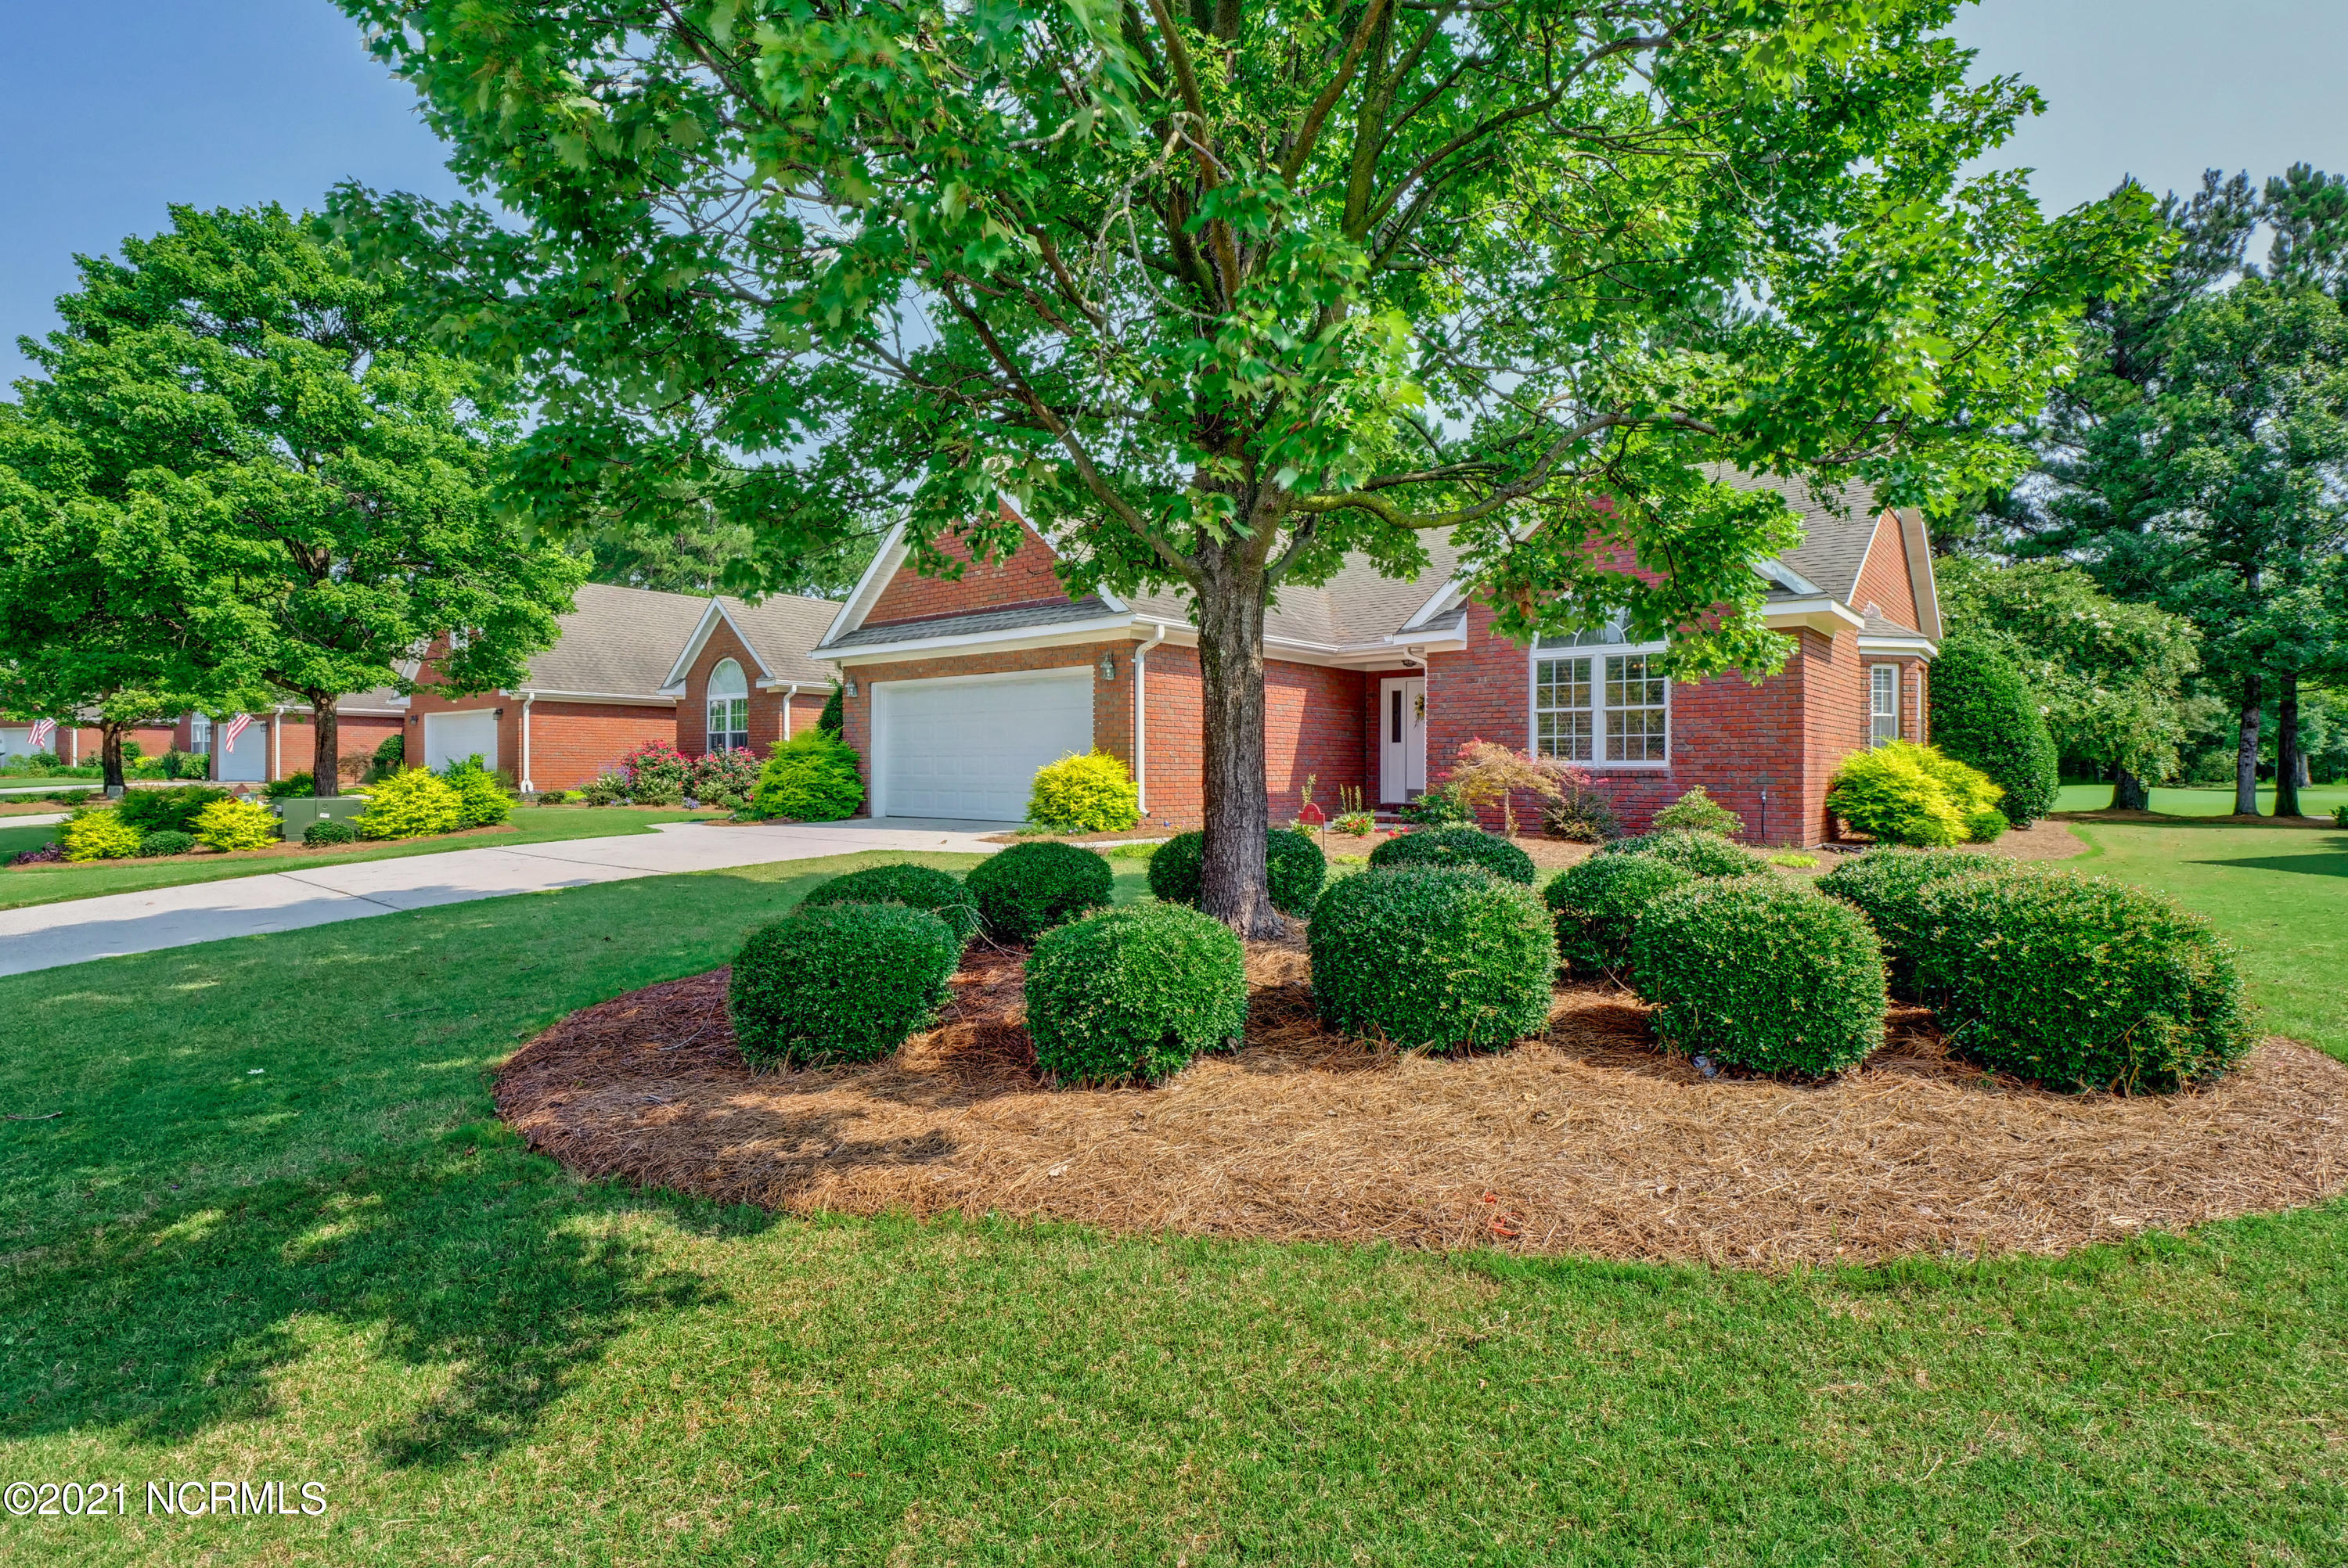 115 Candlewood Drive, Wallace, North Carolina 28466, 3 Bedrooms Bedrooms, 9 Rooms Rooms,2 BathroomsBathrooms,Single family residence,For sale,Candlewood,100284372